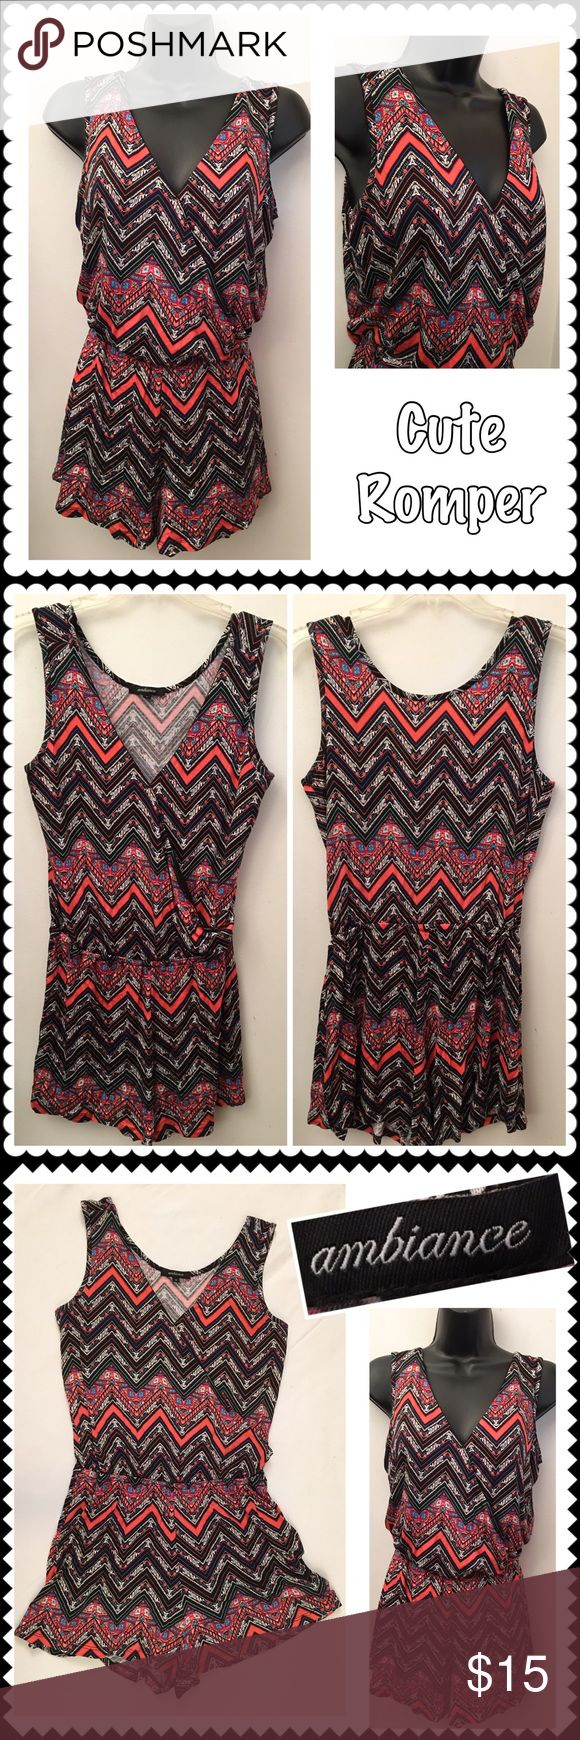 NEW Soft knit romper by Ambiance Sz Small Brand-new soft knit romper by ambiance. Black, coral and white zigzag print. Elastic waist. Wrap style V neckline. Sleeveless. Super cute! Sz Small Ambiance Apparel Shorts